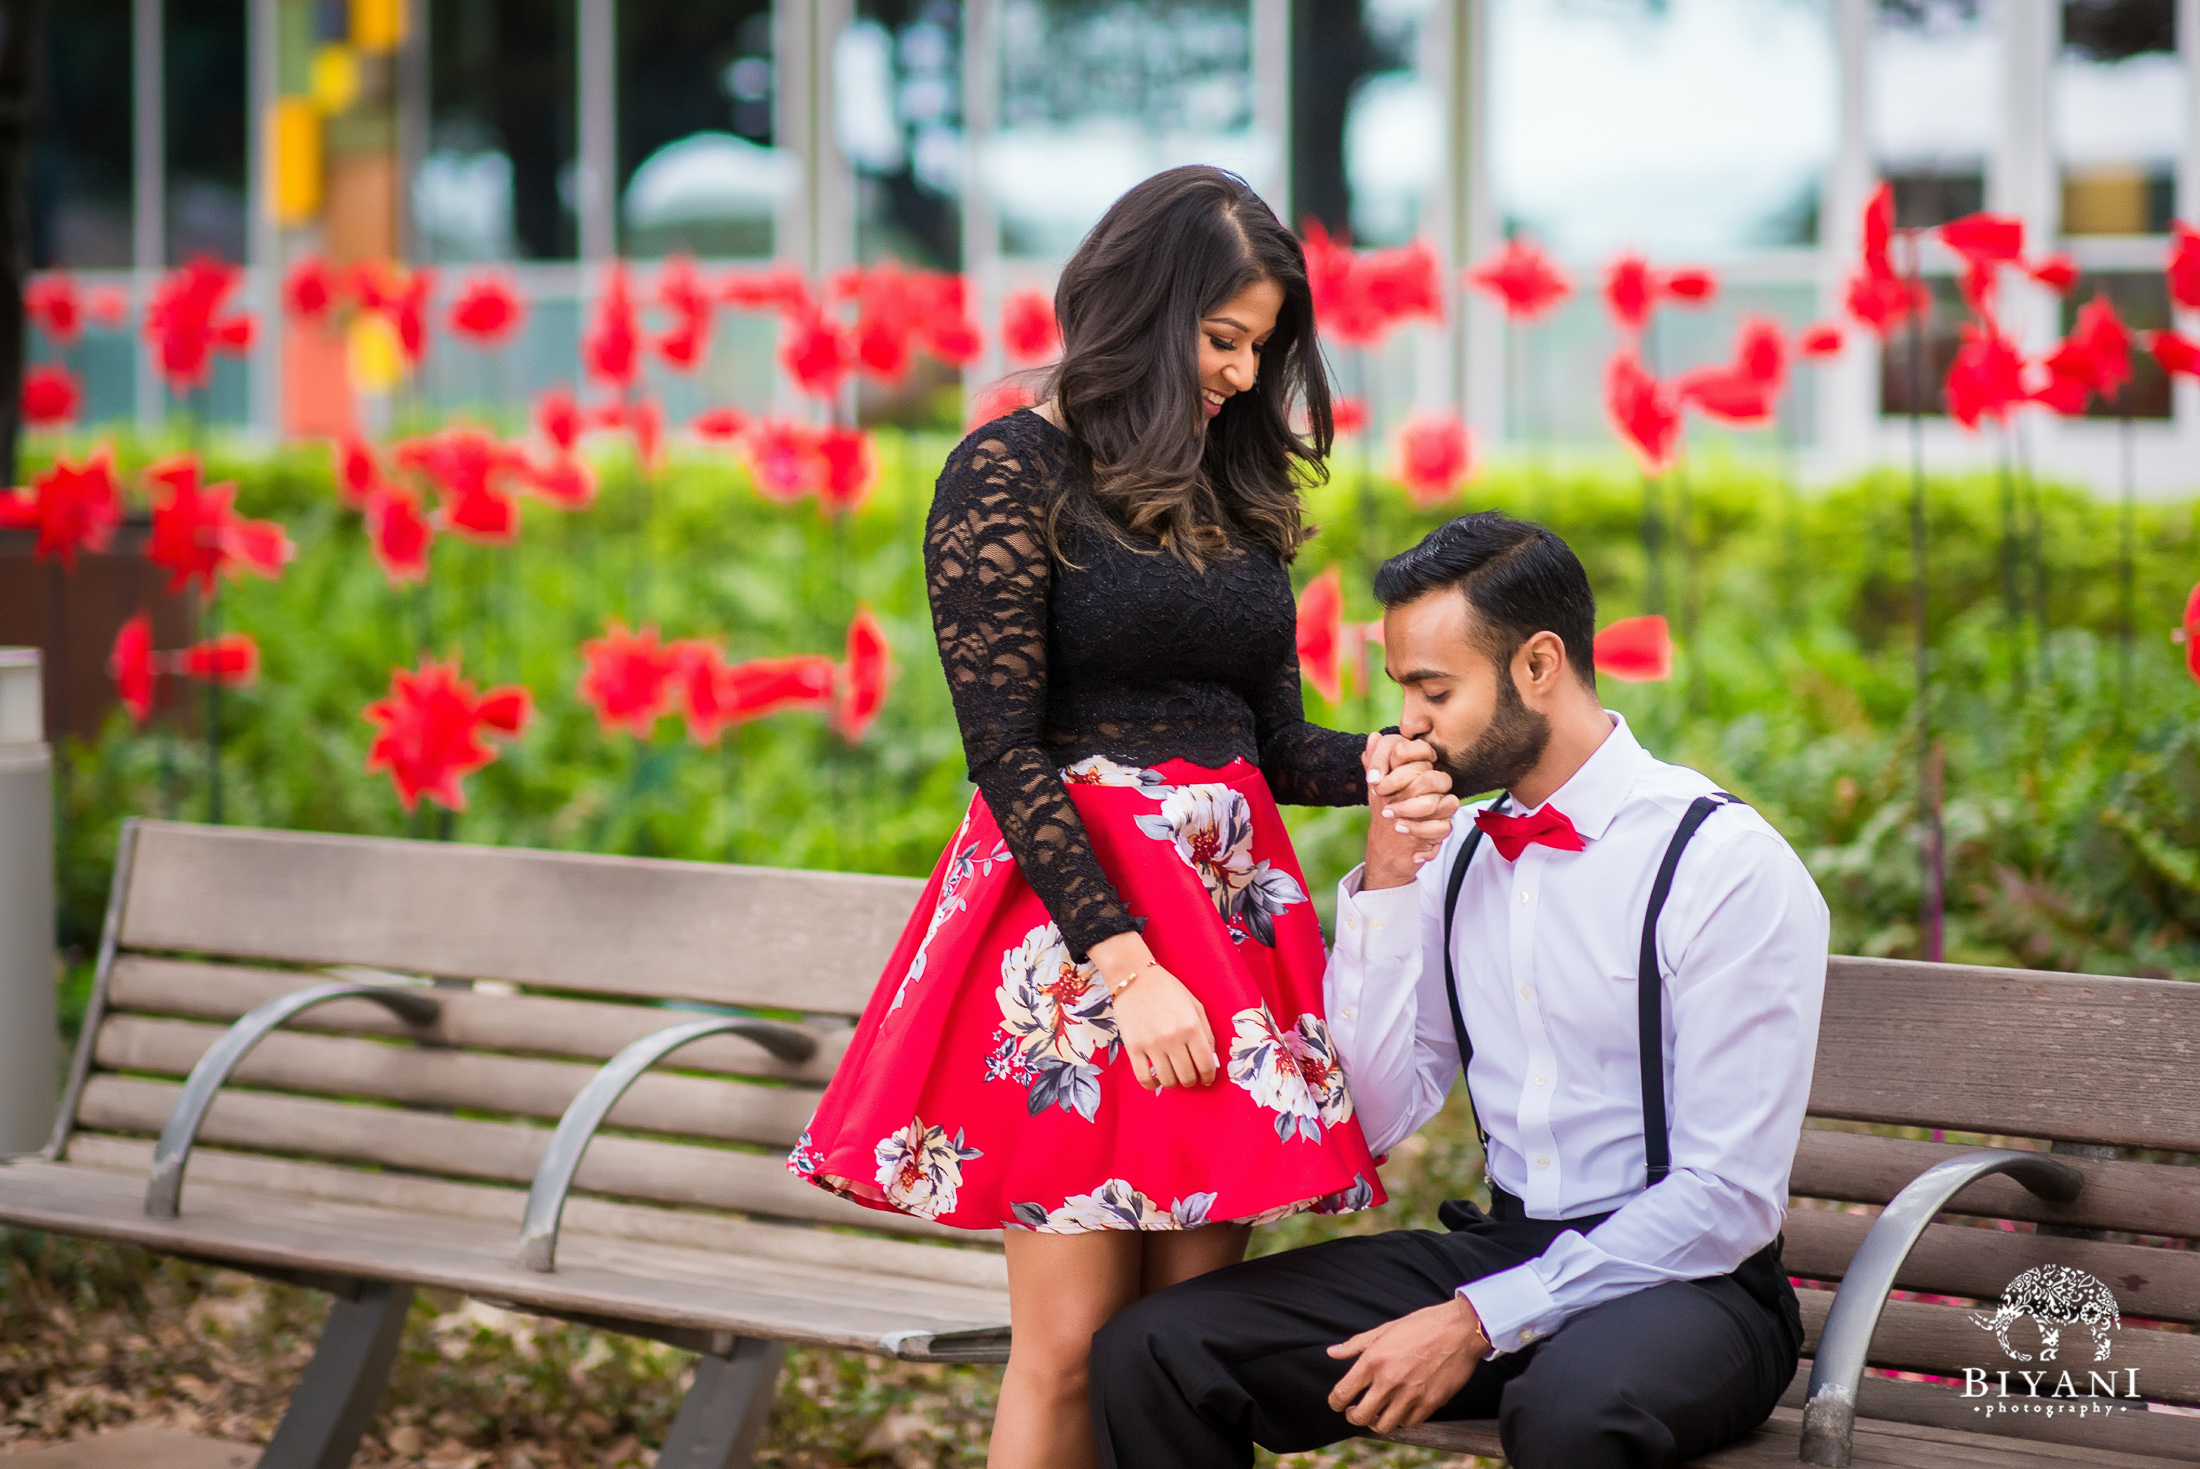 groom kisses his soon to be bride on the hand in a park with red flowers in the back